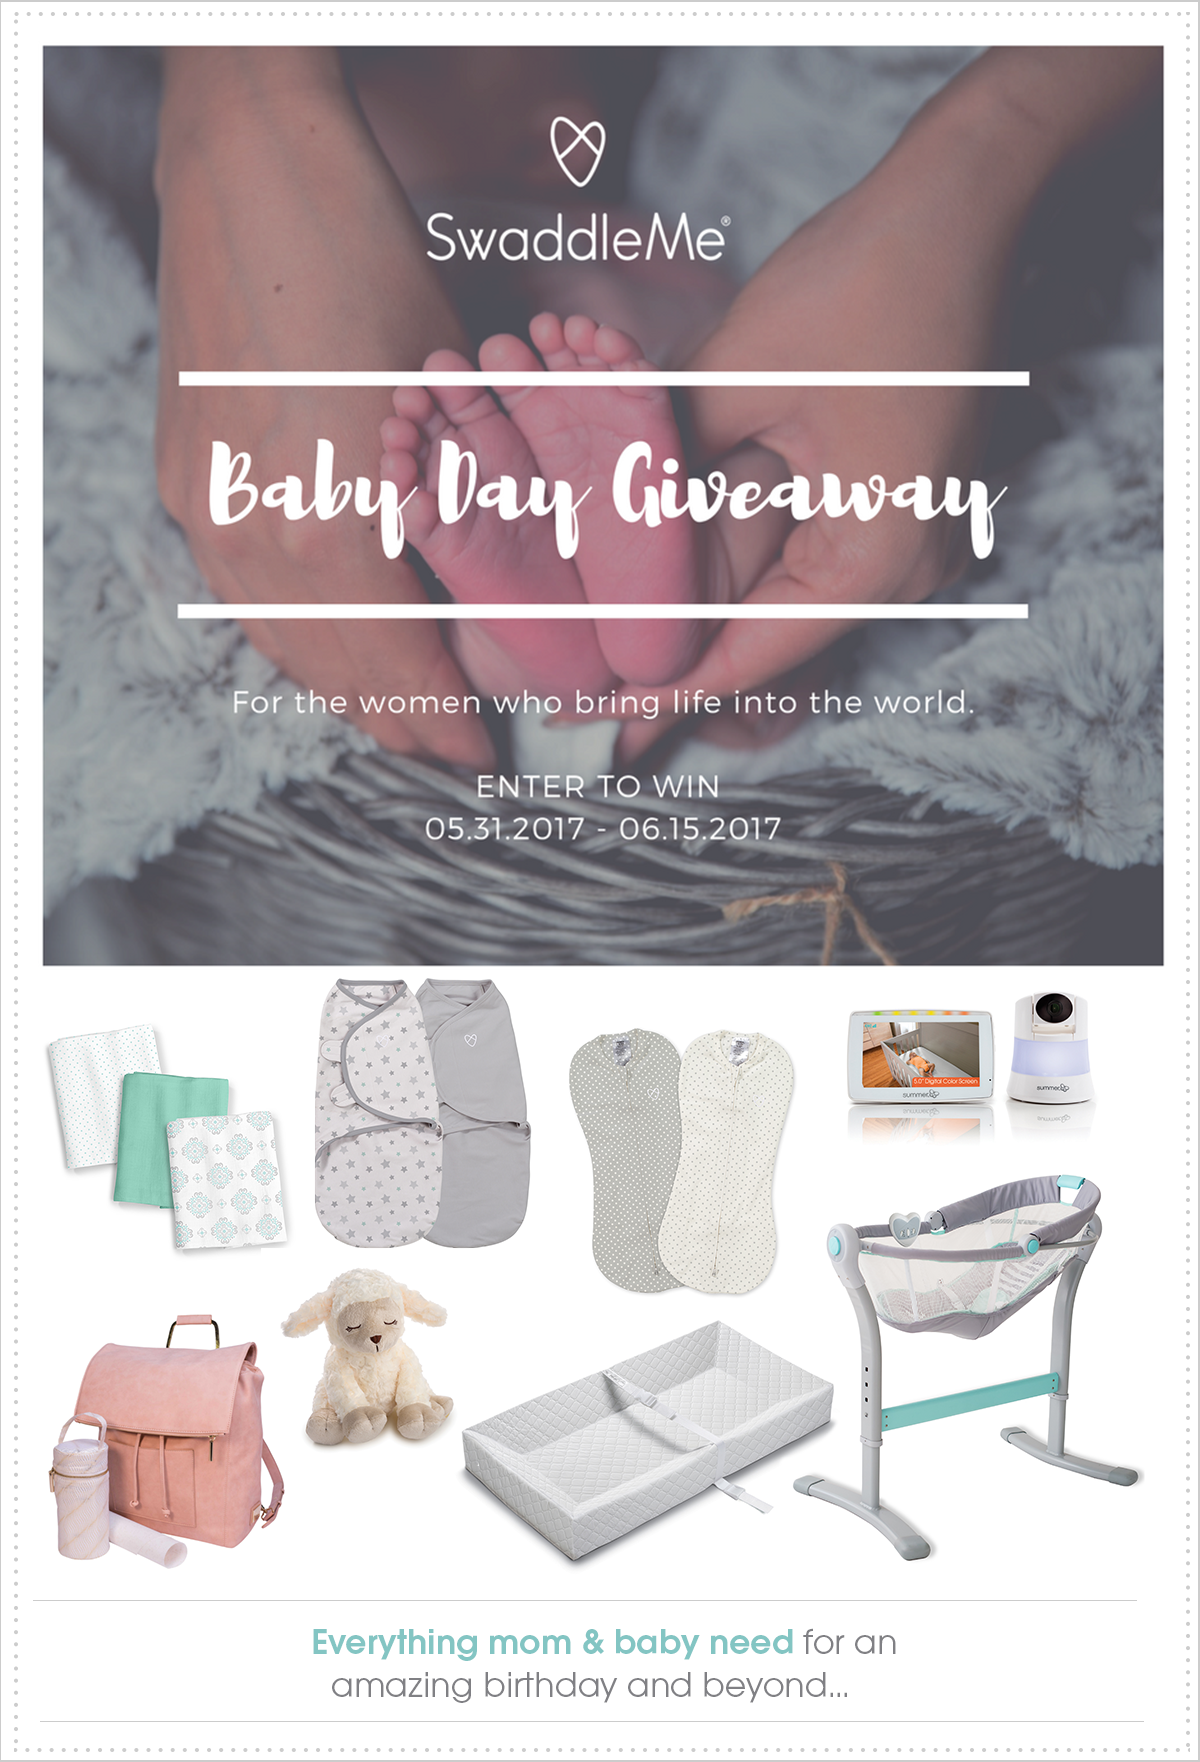 2017 SwaddleMe Baby Day Giveaway